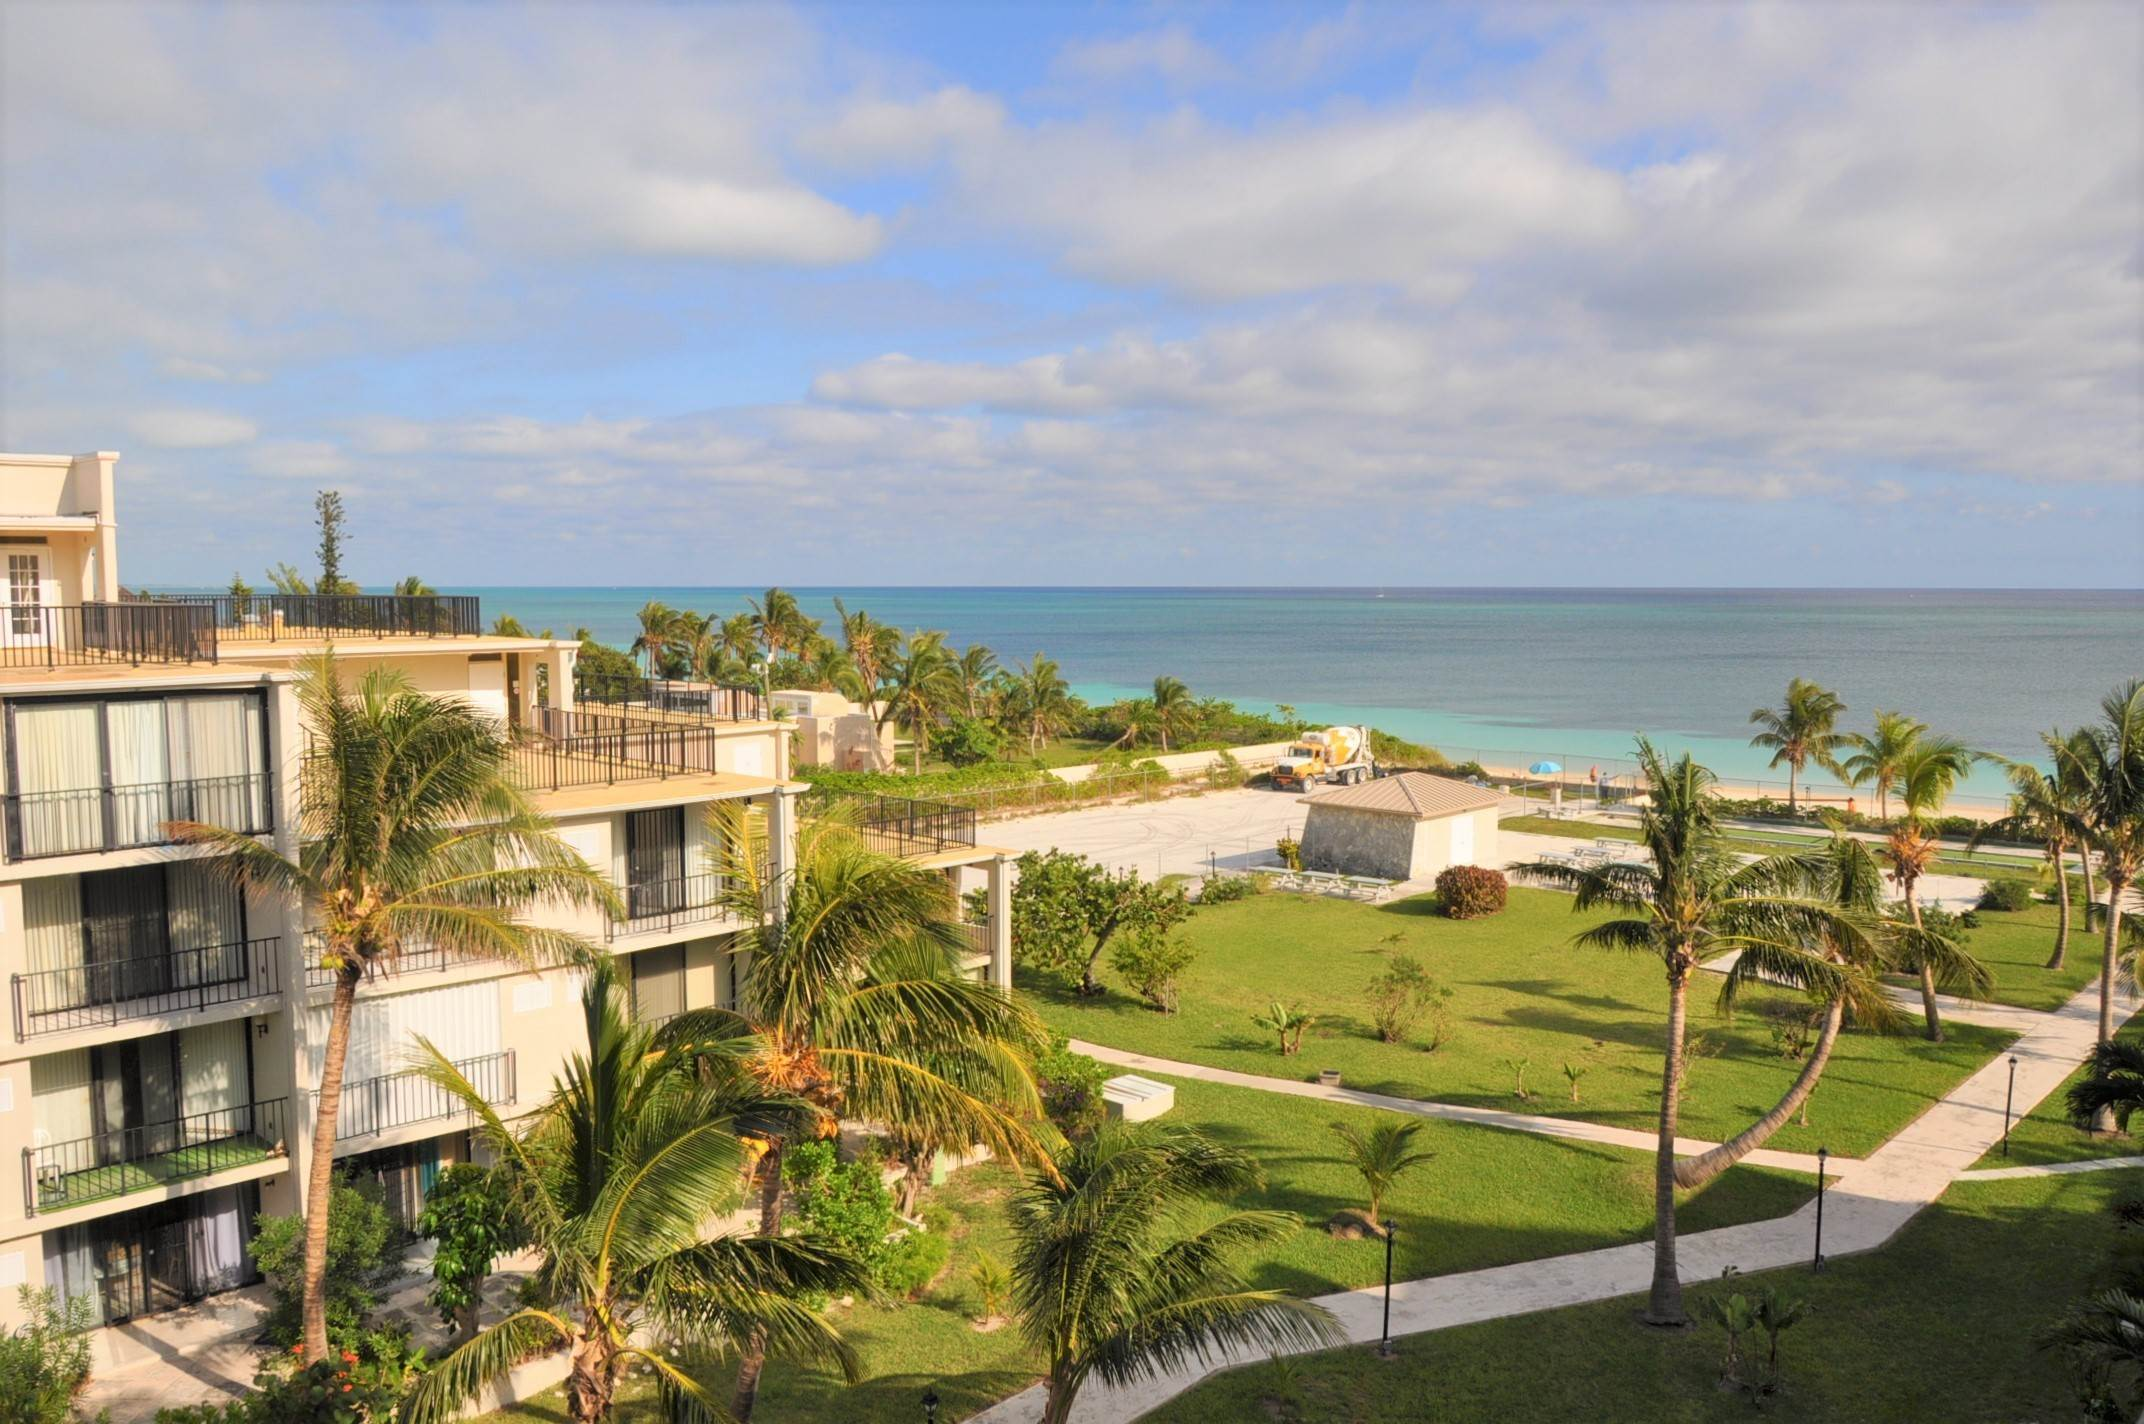 Co-op / Condo for Sale at Beachfront Condo for SALE or RENT with Fantastic Views! - MLS 39795 Lucayan Beach, Freeport And Grand Bahama, Bahamas